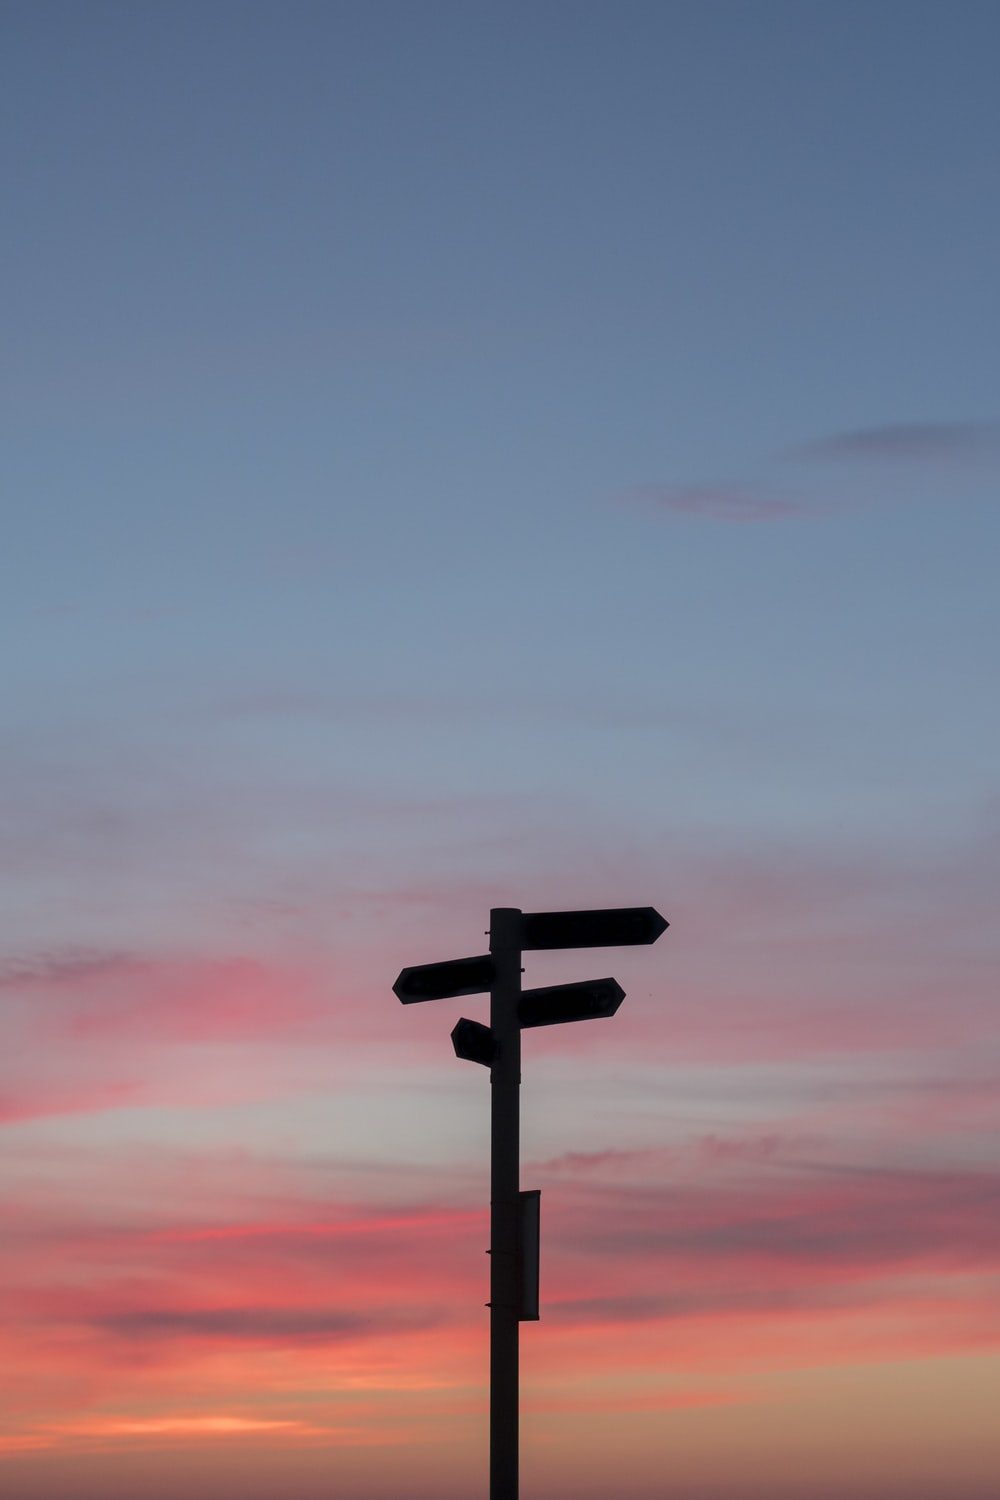 silhouette of a road signage during golden hour